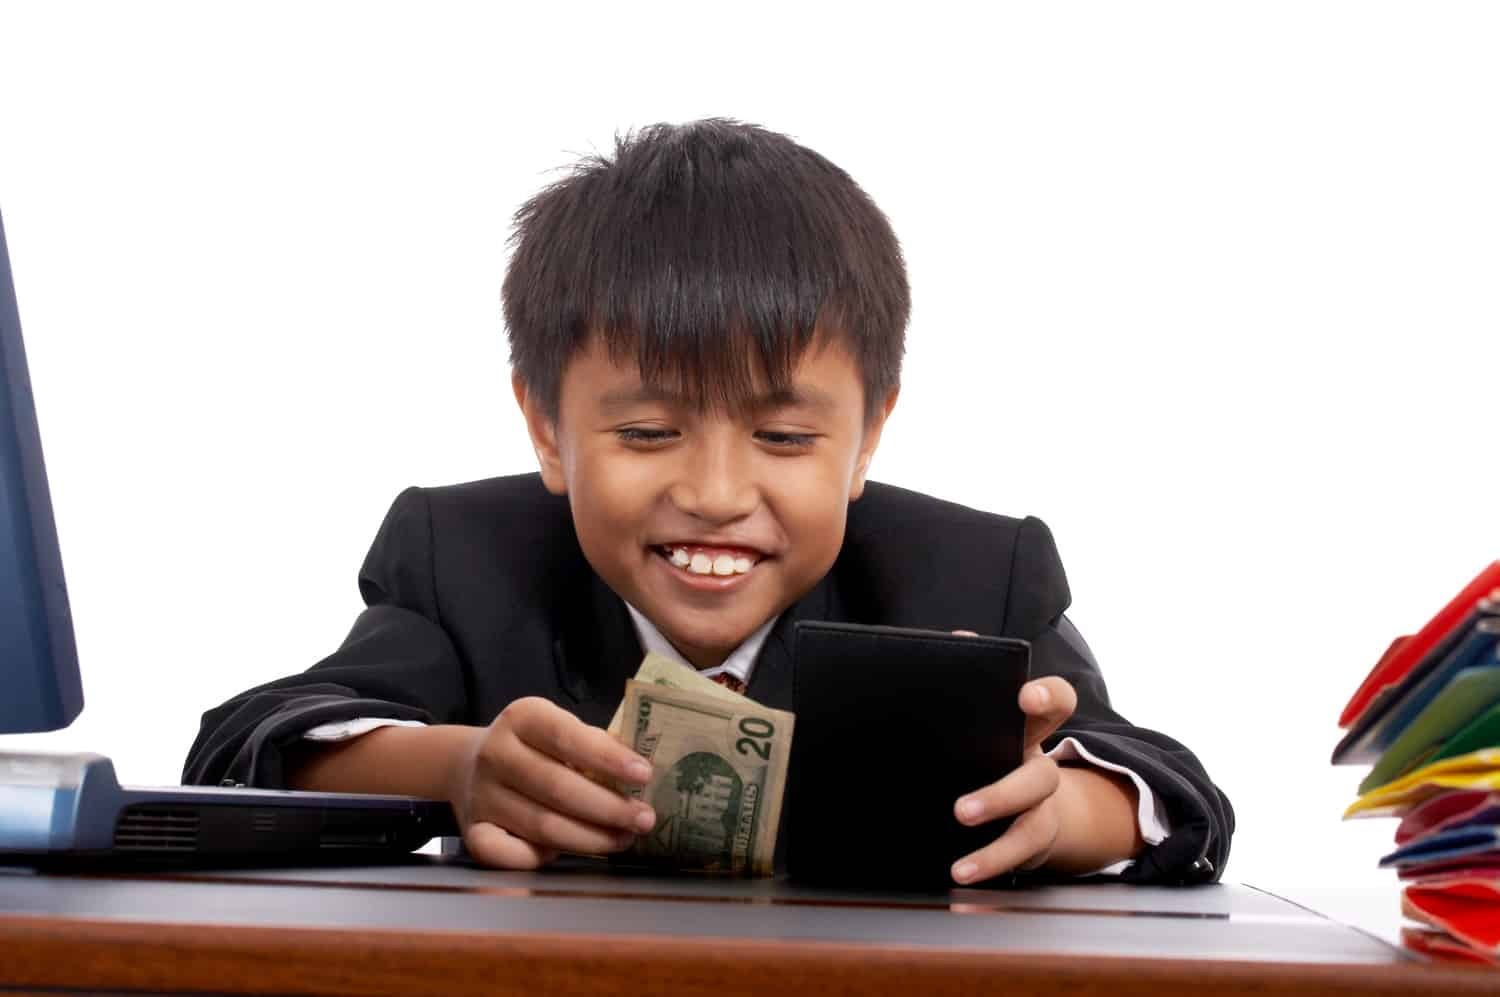 Boy sitting at desk removing cash from a wallet.